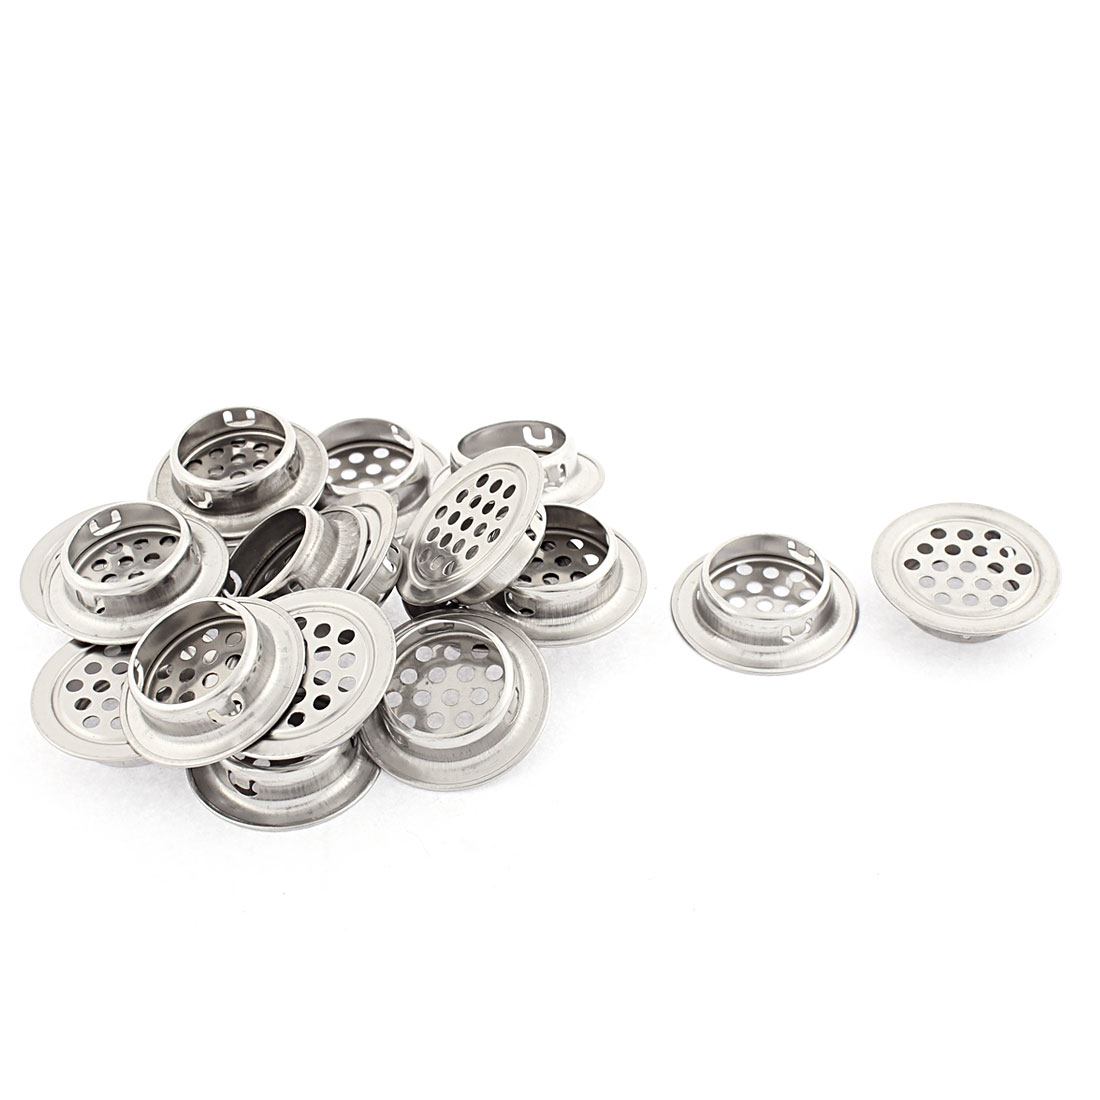 Cabinet Metal Flat Round Shaped Mesh Hole Air Vent Louver 35mm 18 Pcs